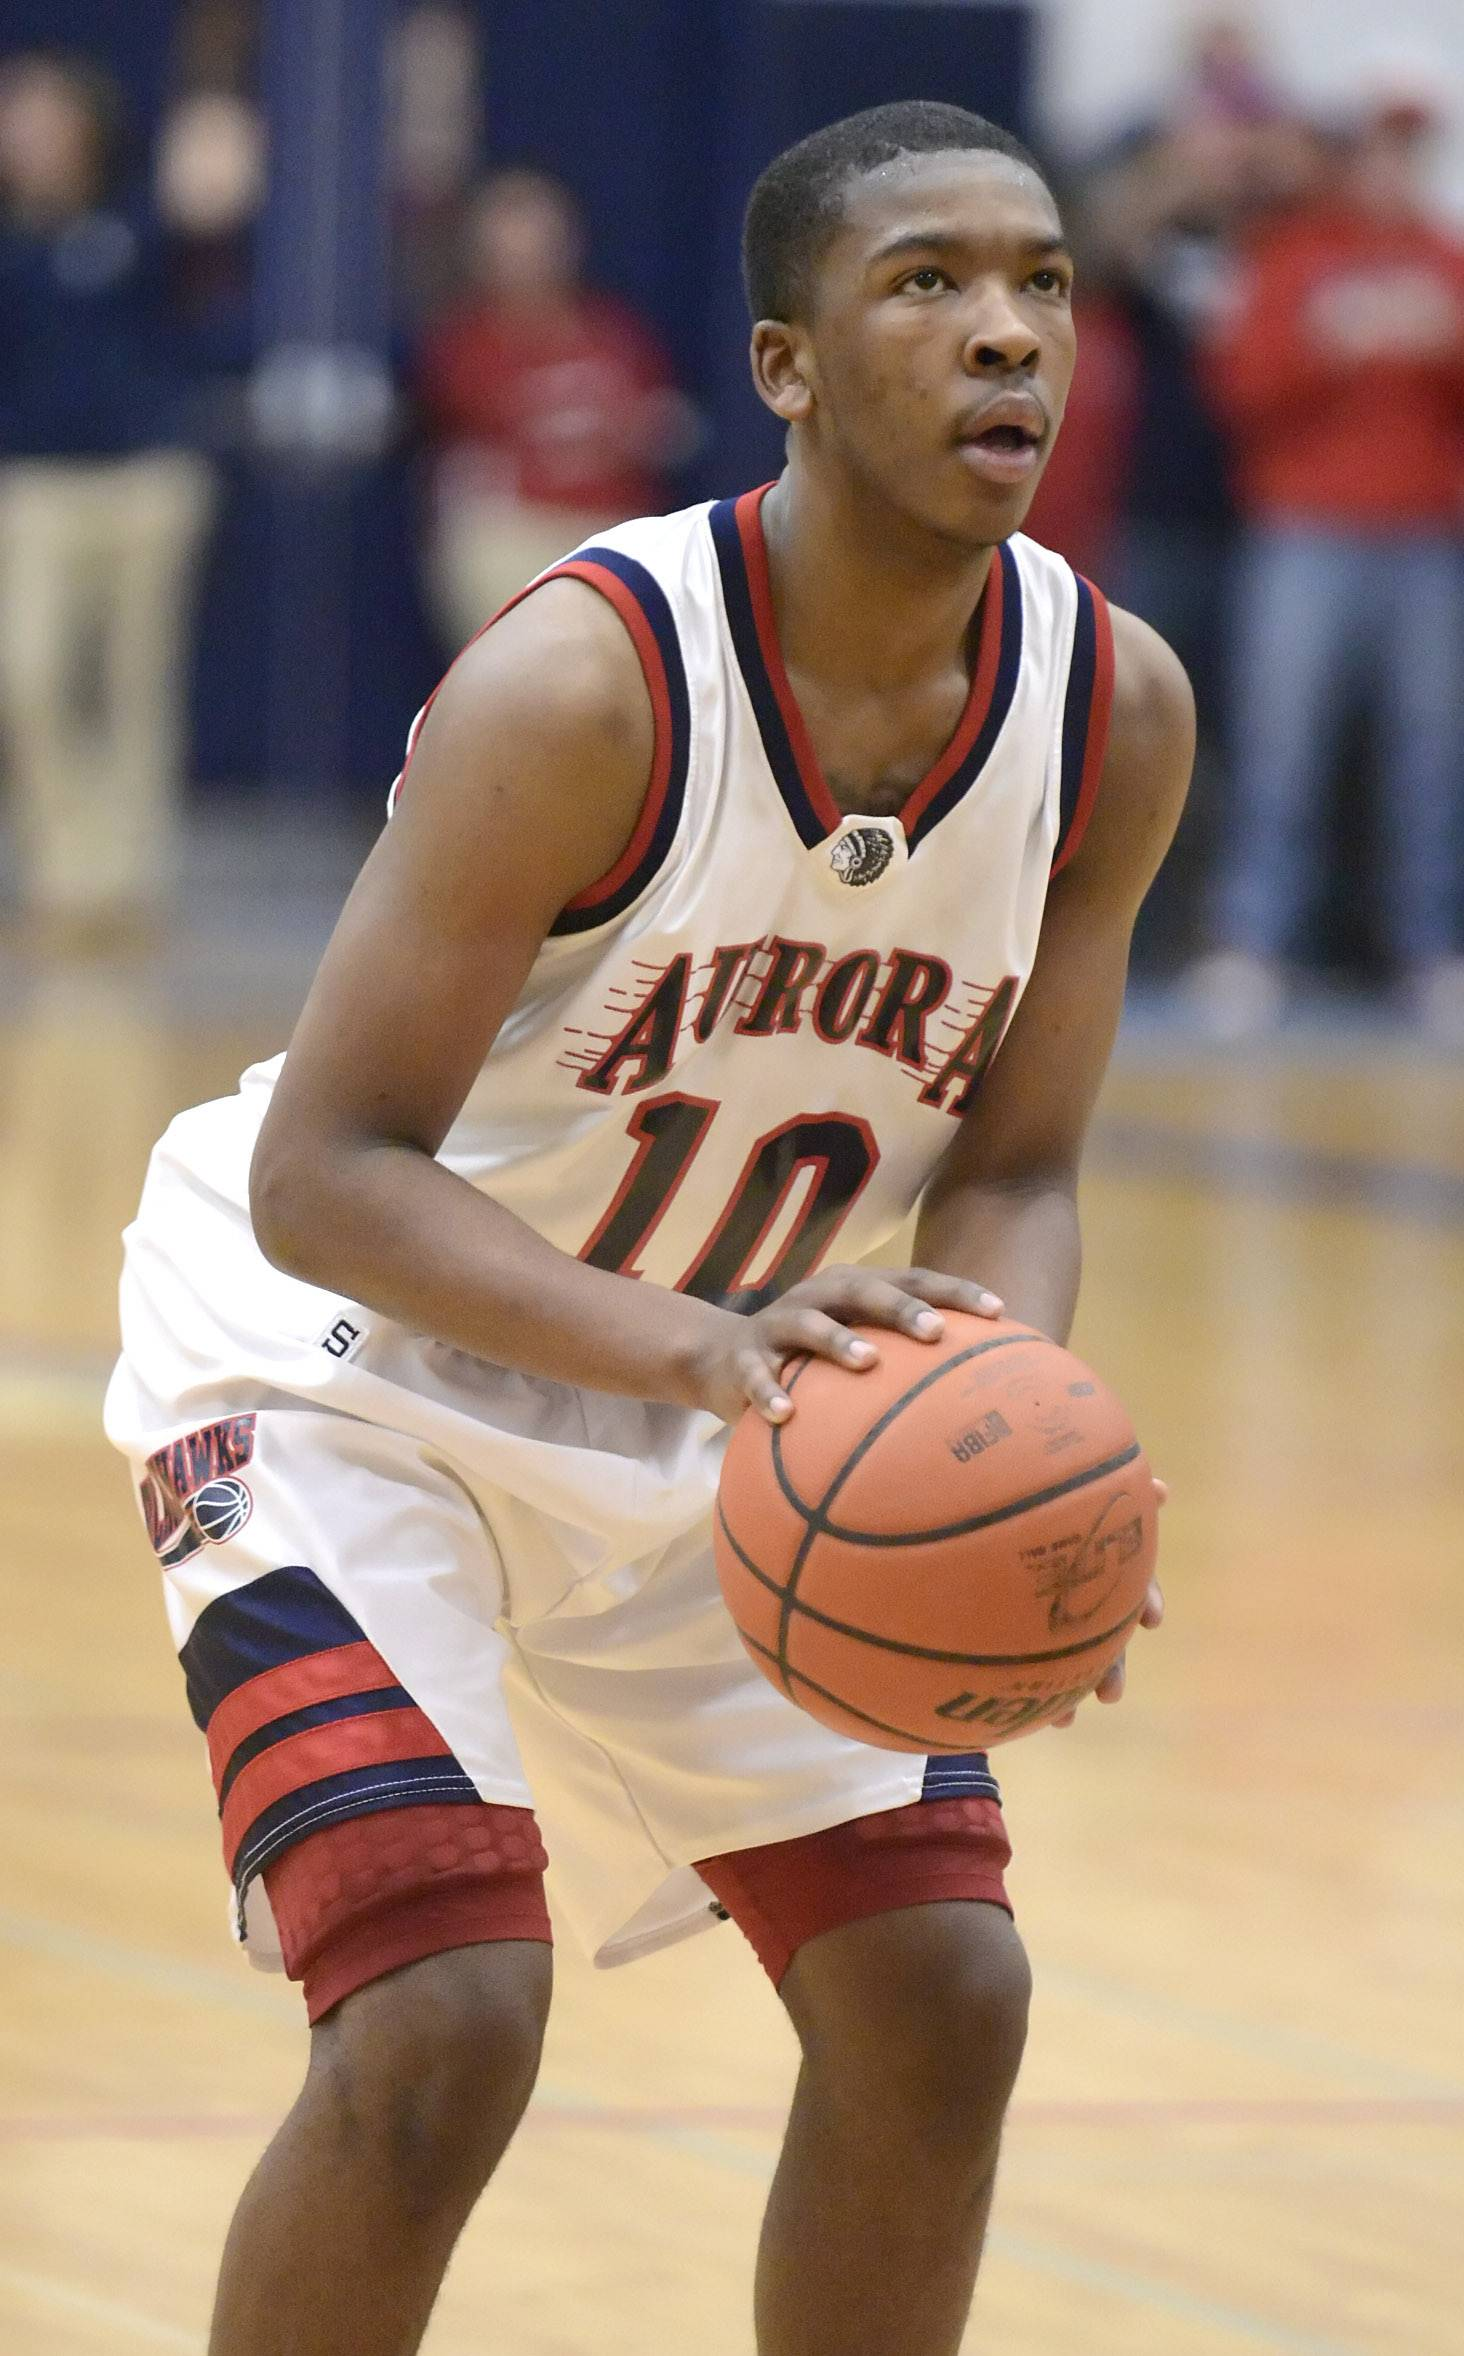 West Aurora's Jontrell Walker has a streak of 30 straight free throws.